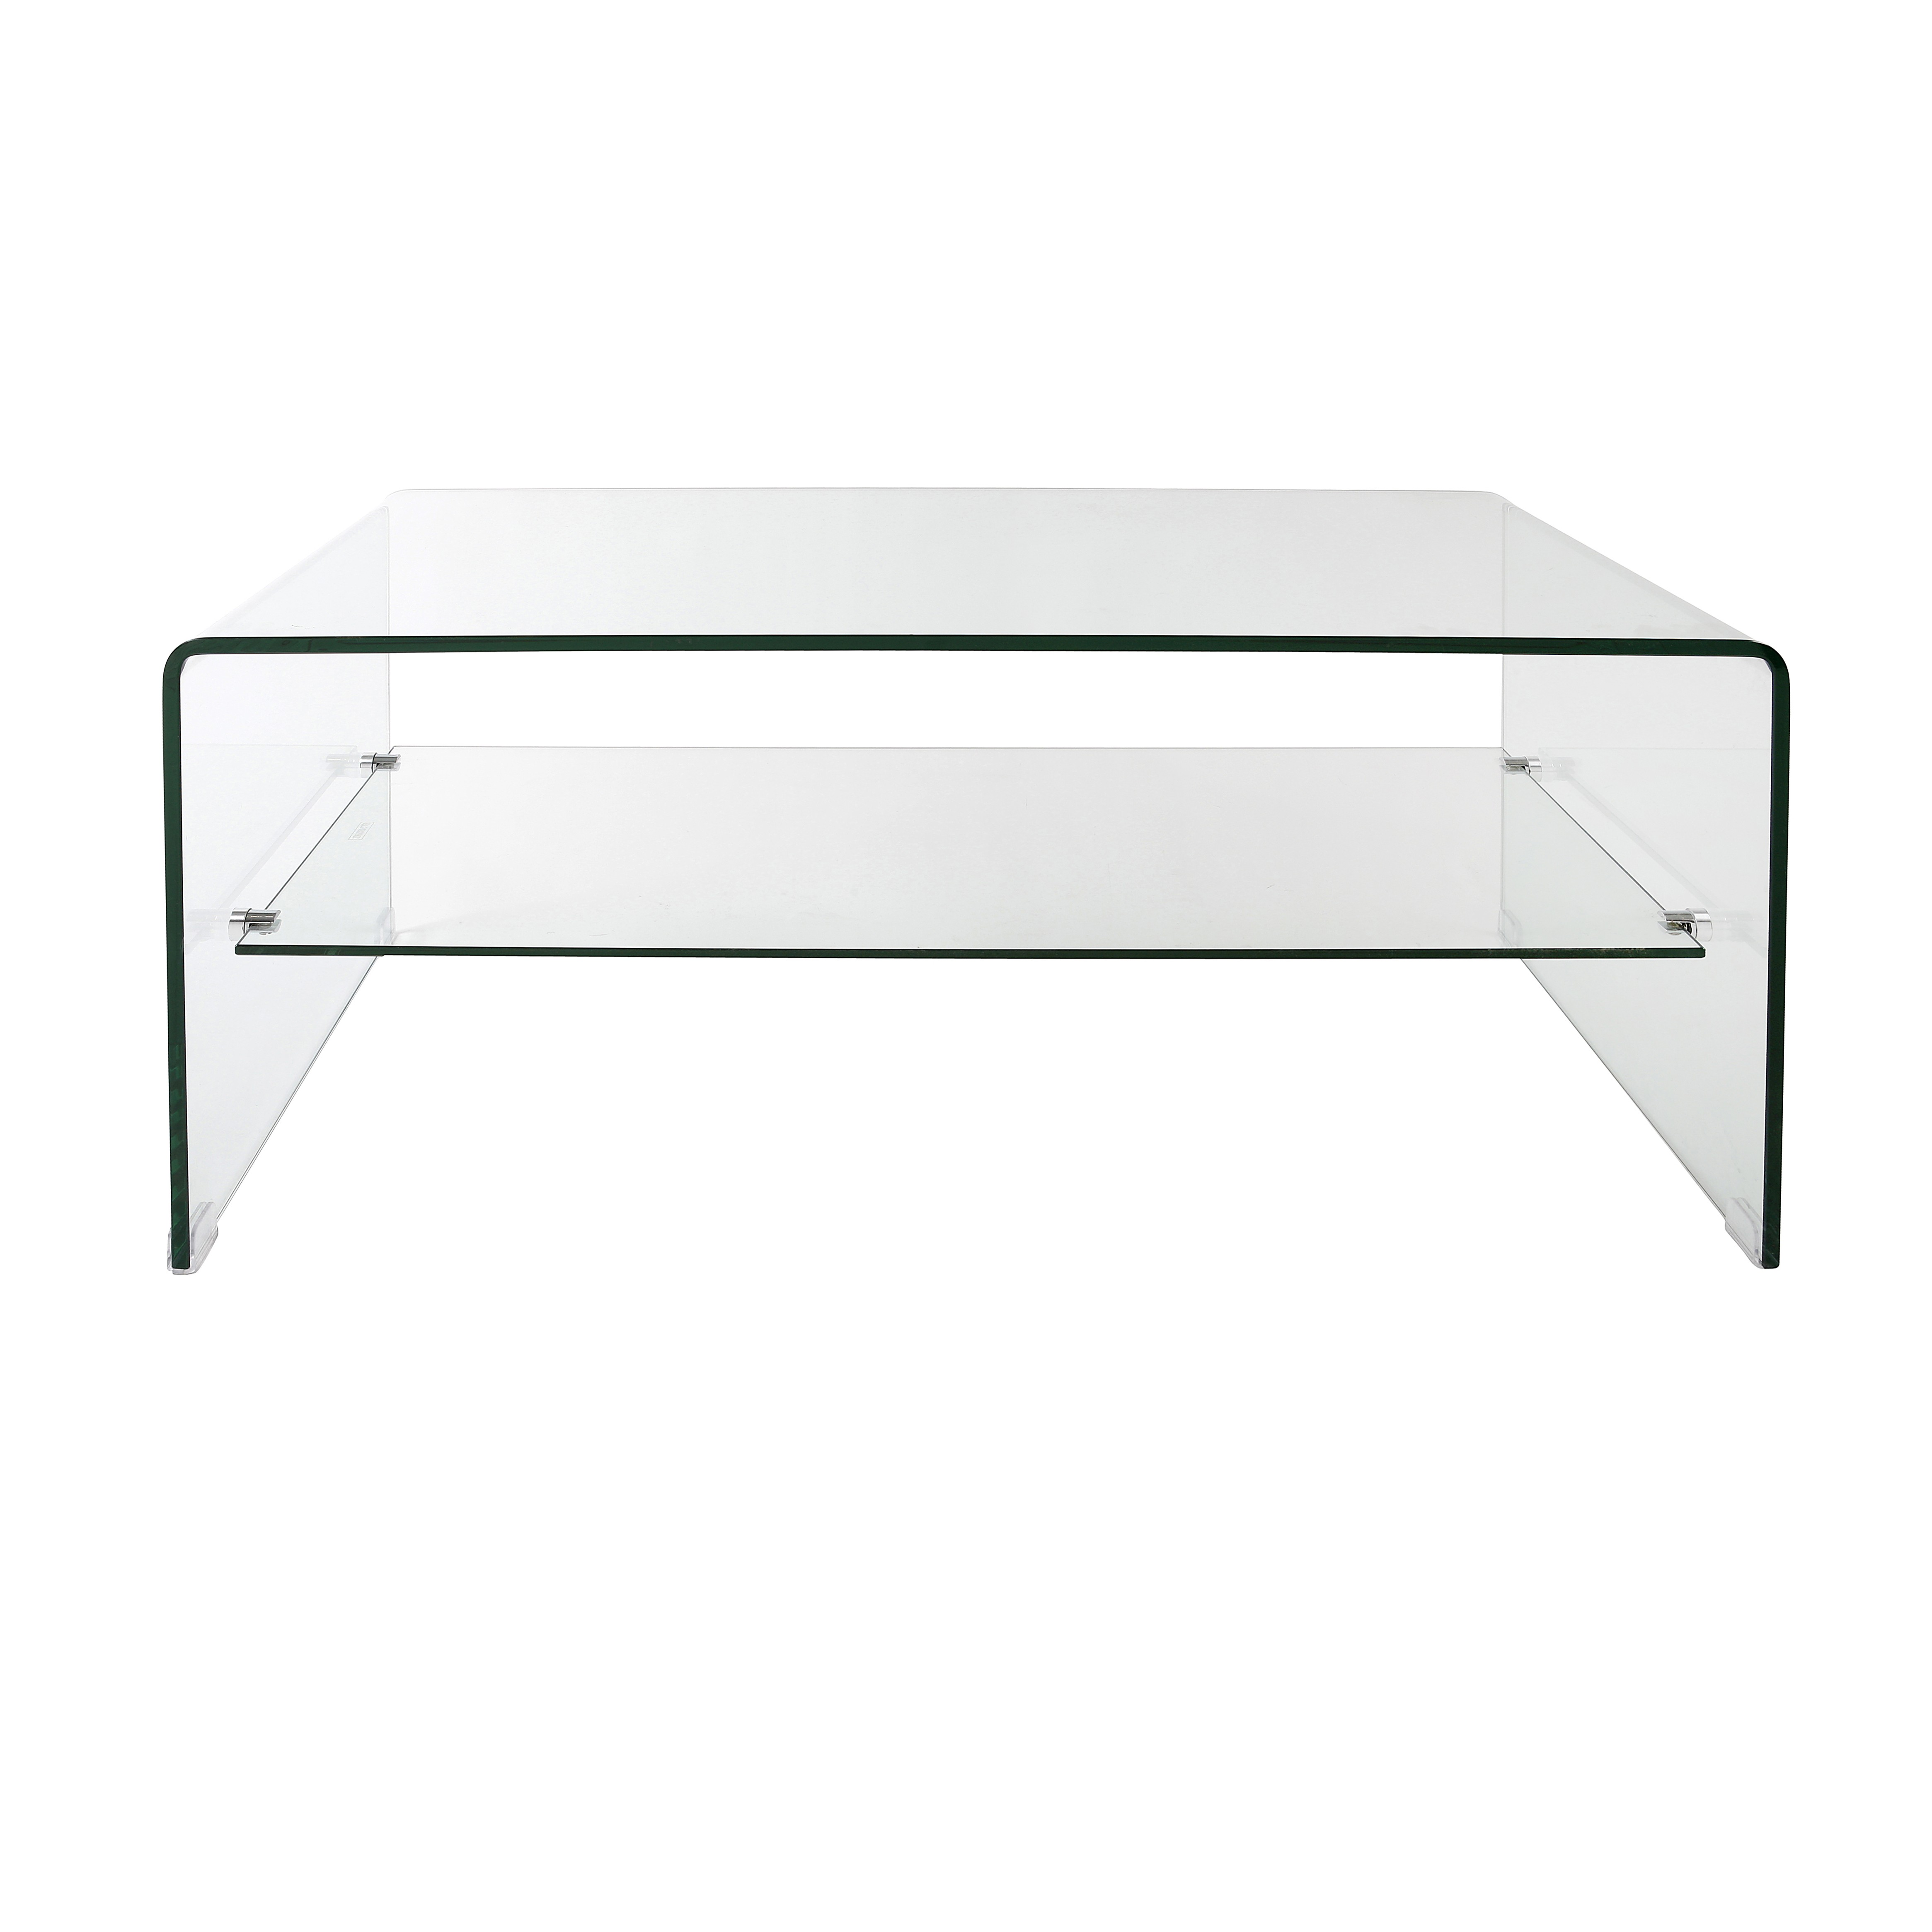 Coffee-Tables-Glass-the-perfect-size-to-fit-with-one-of-our-Younger-sectional-sofas-Modern-minimalist-industrial-style (Image 6 of 10)